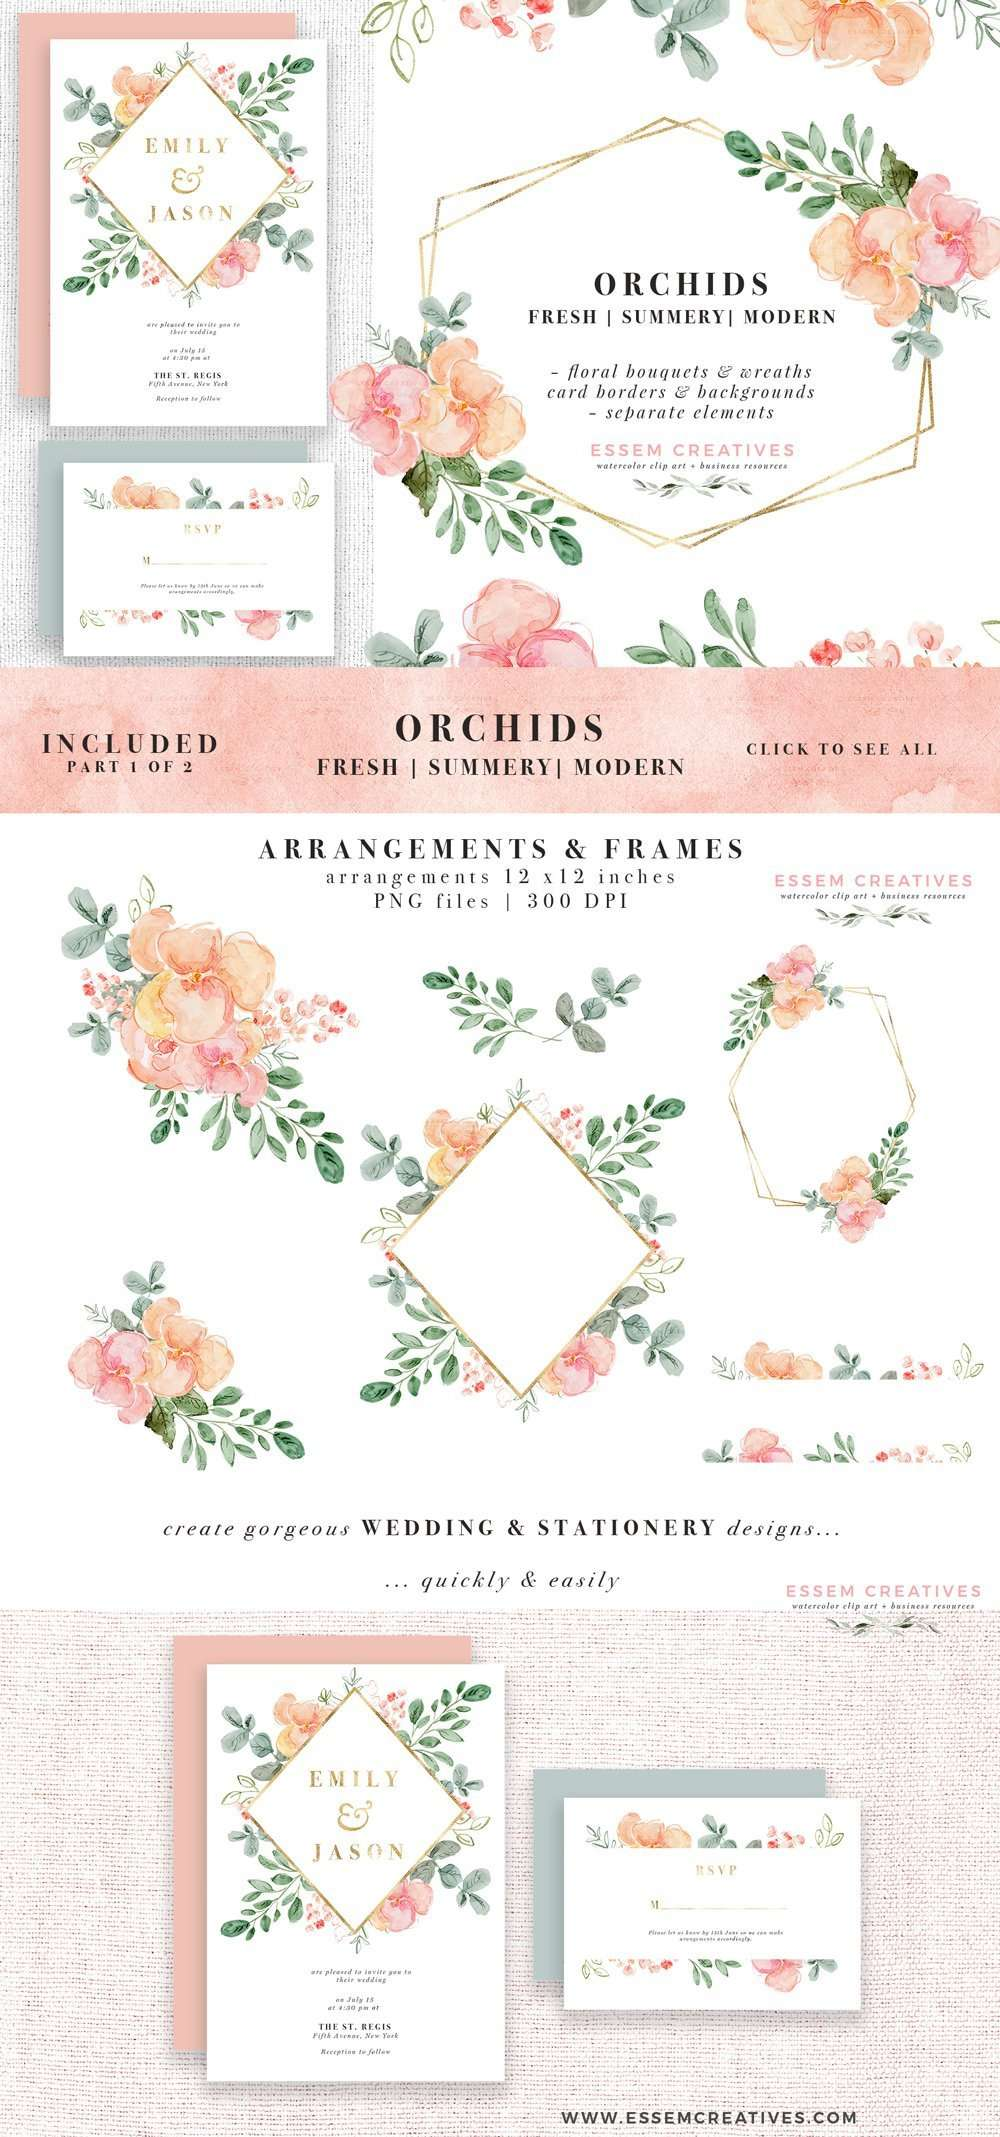 Watercolor Orchids Illustration Graphics Clip Art For Tropical Wedding Invitation Designs